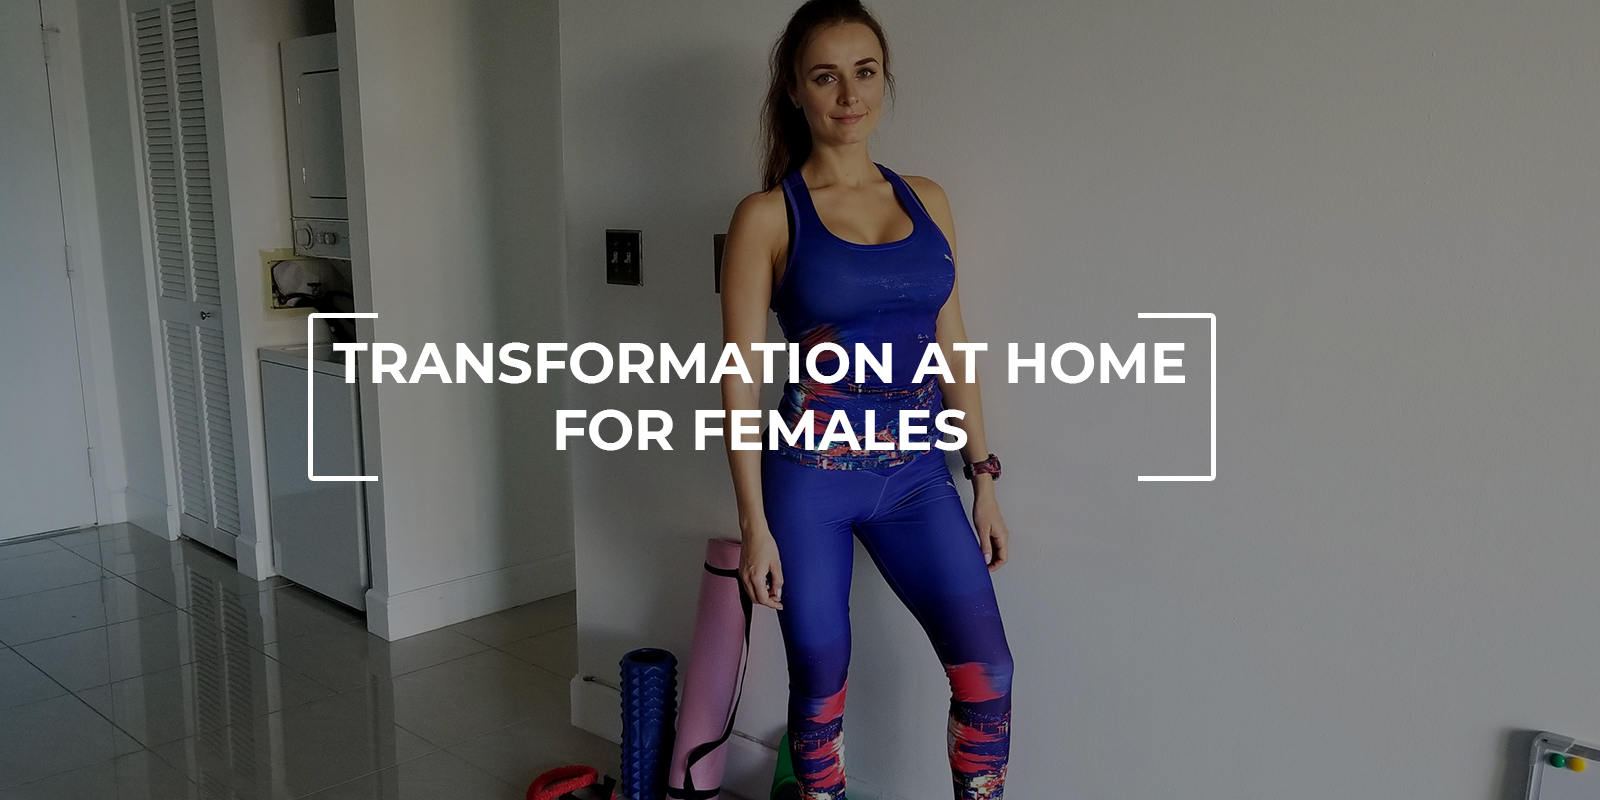 Transformation at home for females